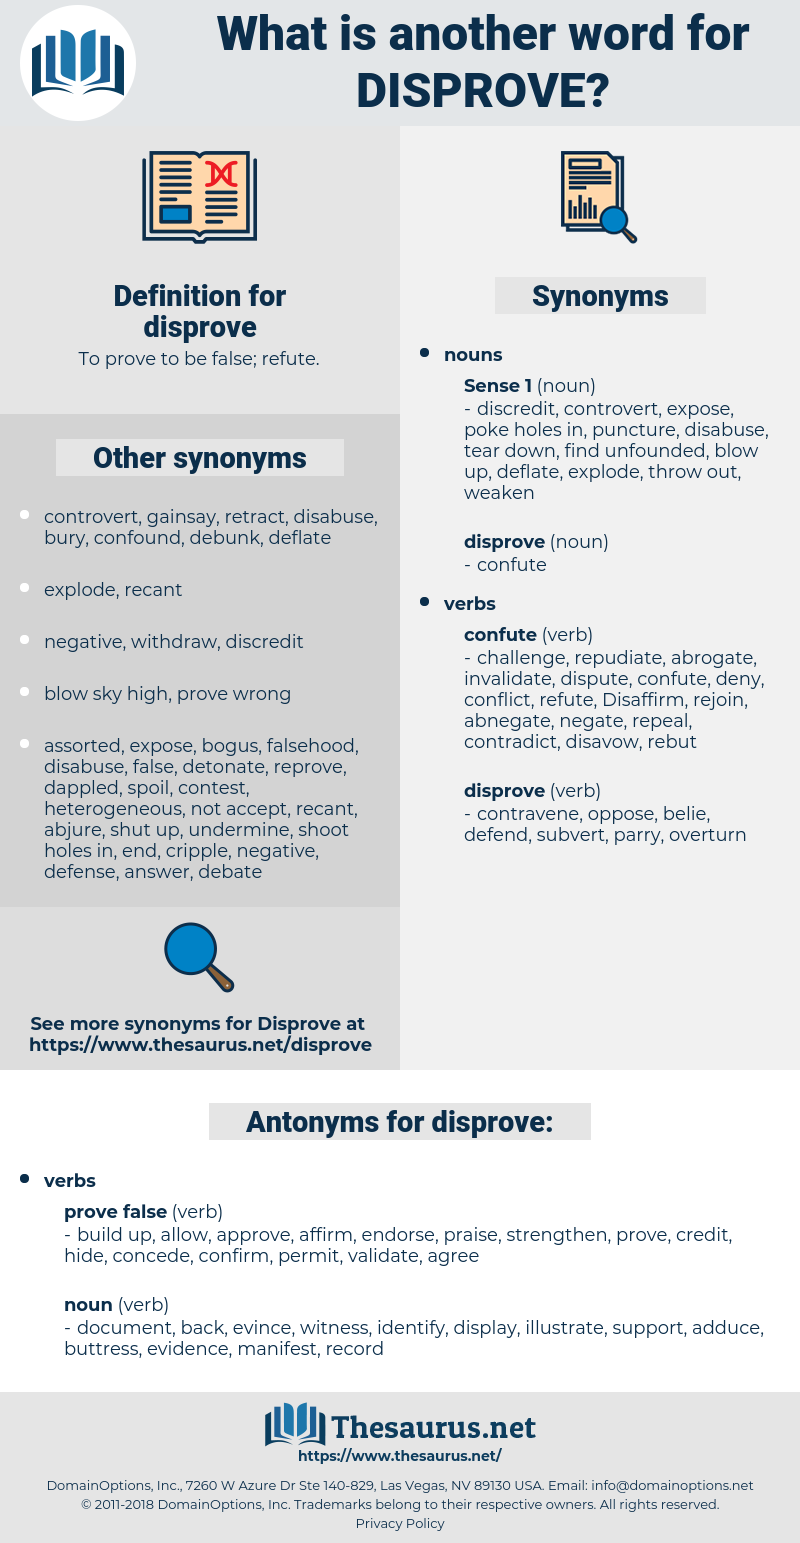 disprove, synonym disprove, another word for disprove, words like disprove, thesaurus disprove